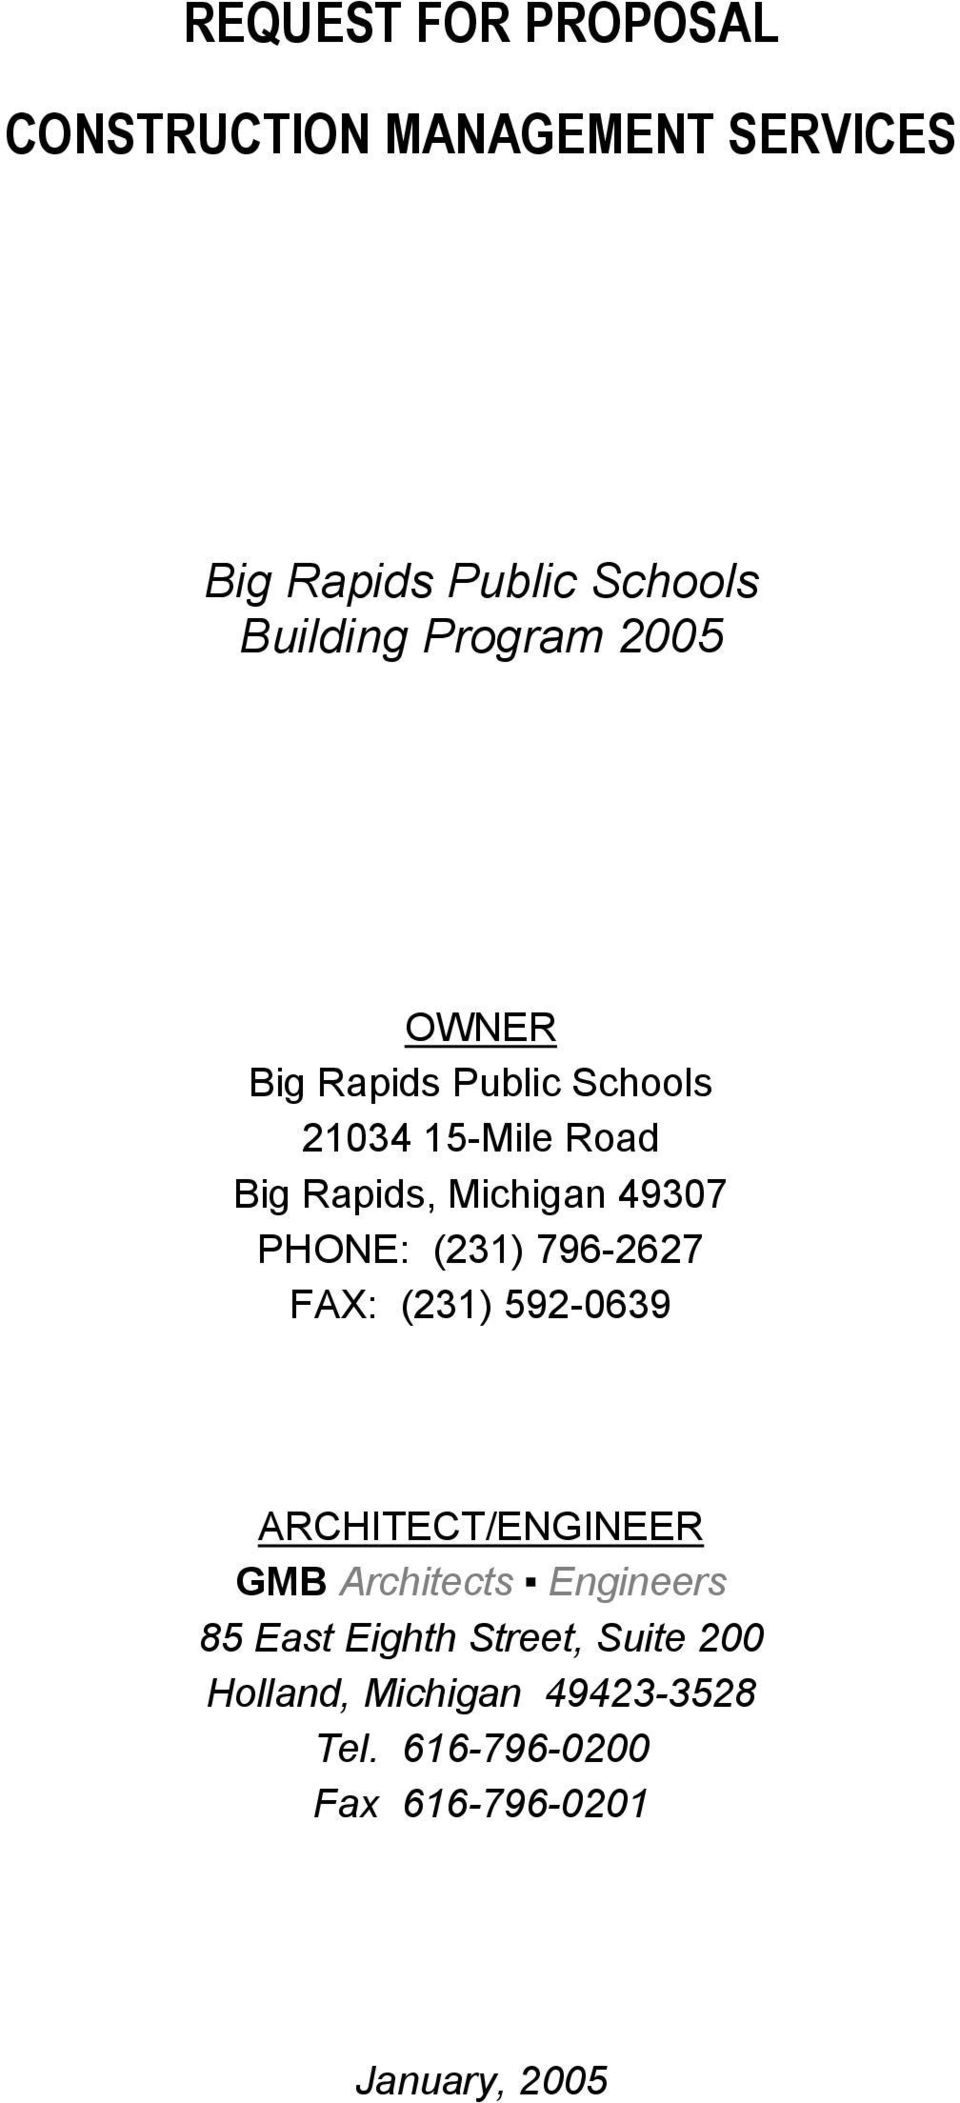 PHONE: (231) 796-2627 FAX: (231) 592-0639 ARCHITECT/ENGINEER GMB Architects Engineers 85 East